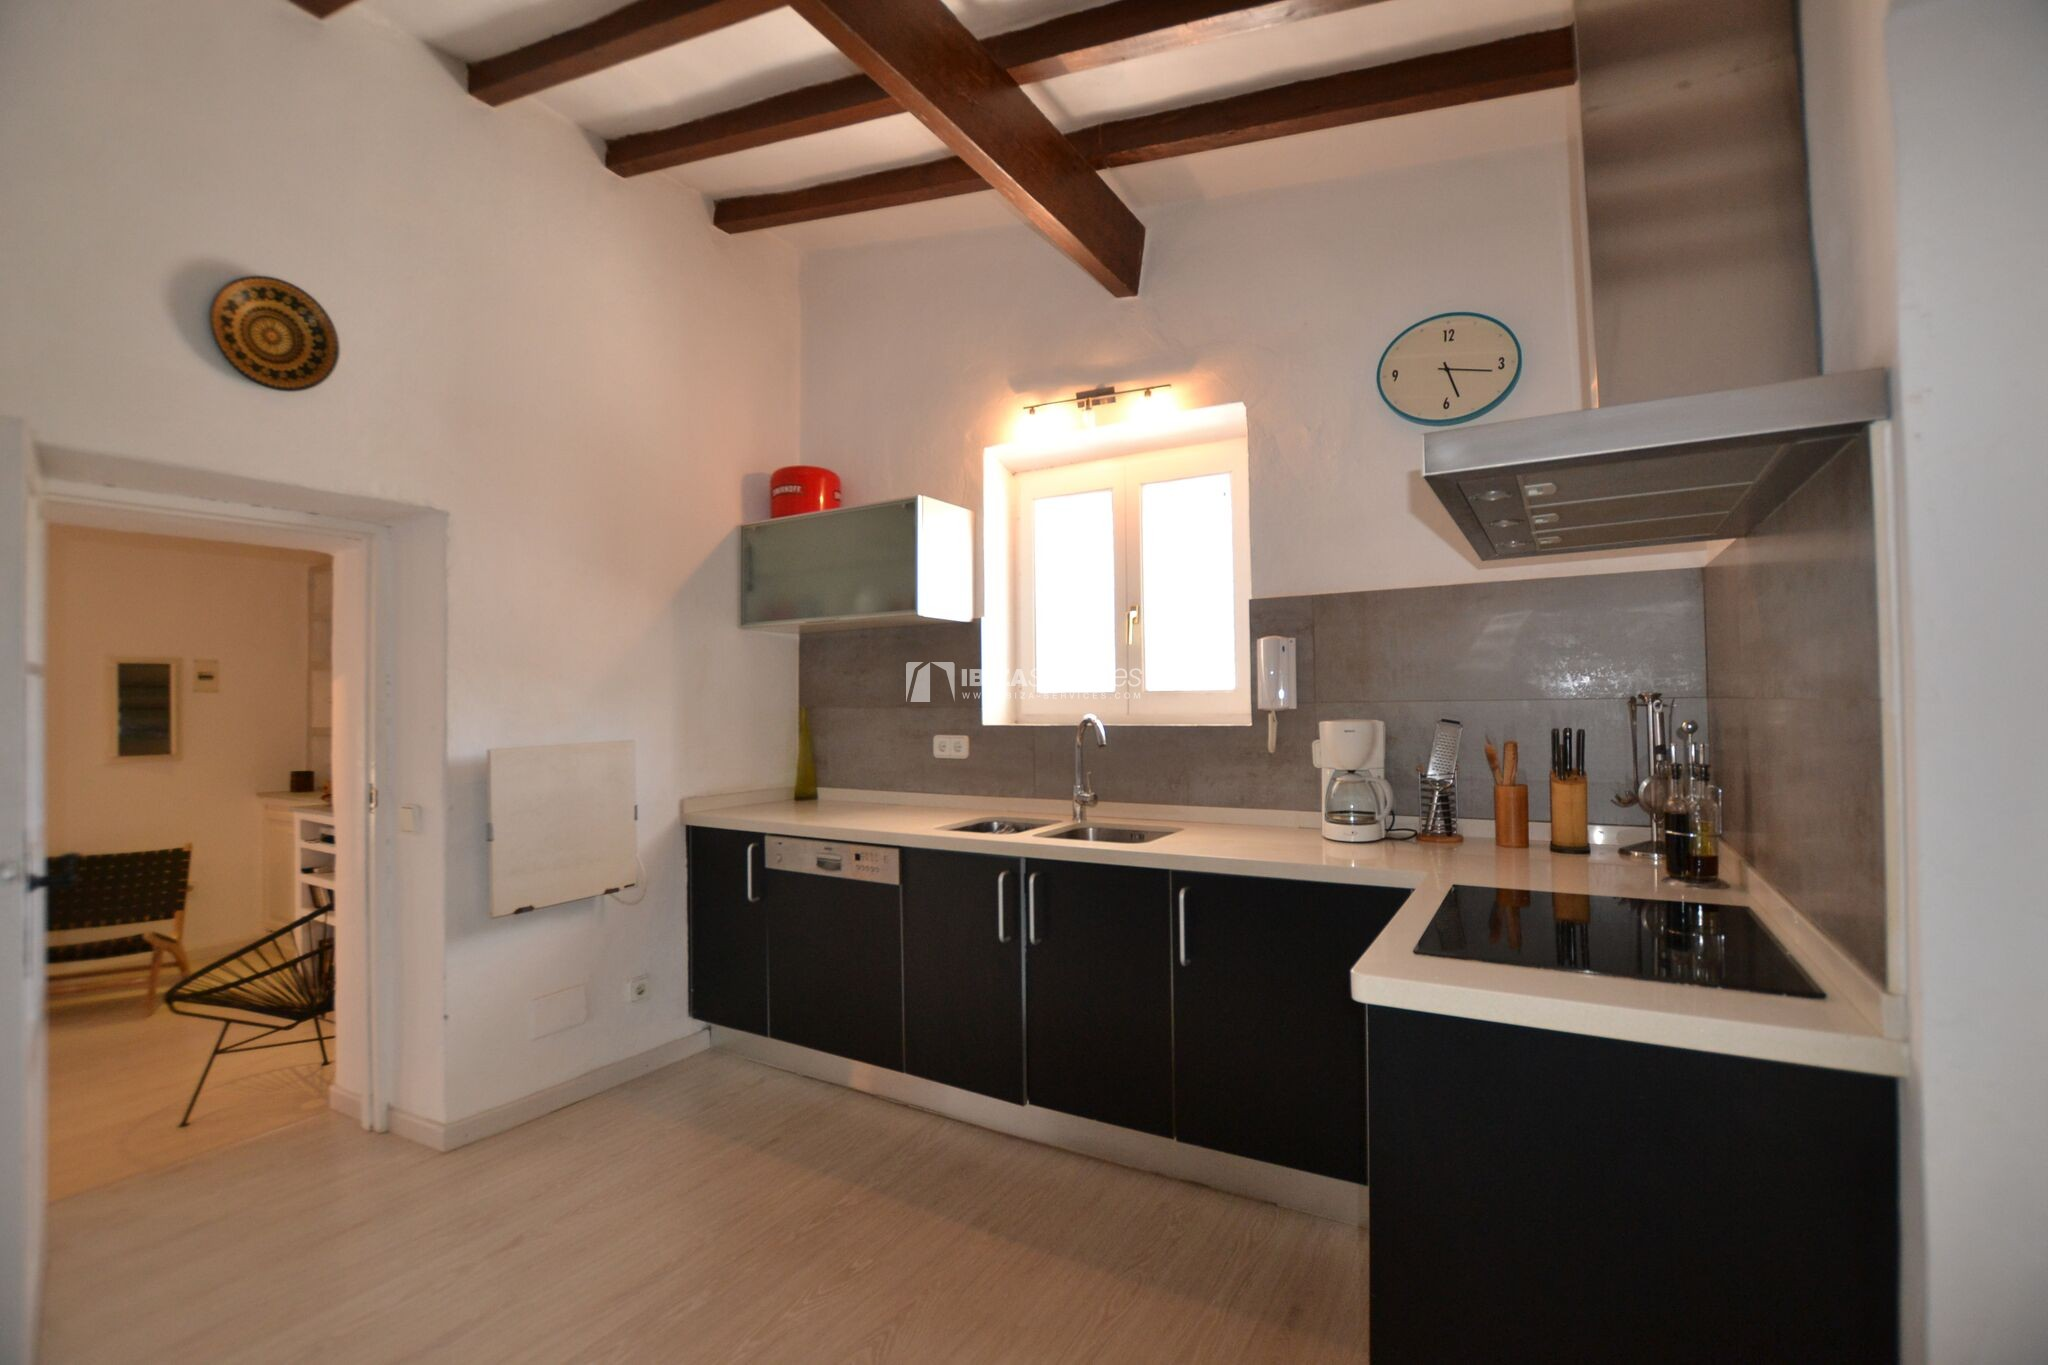 Charming house weekly rental San jordi perspectiva 22